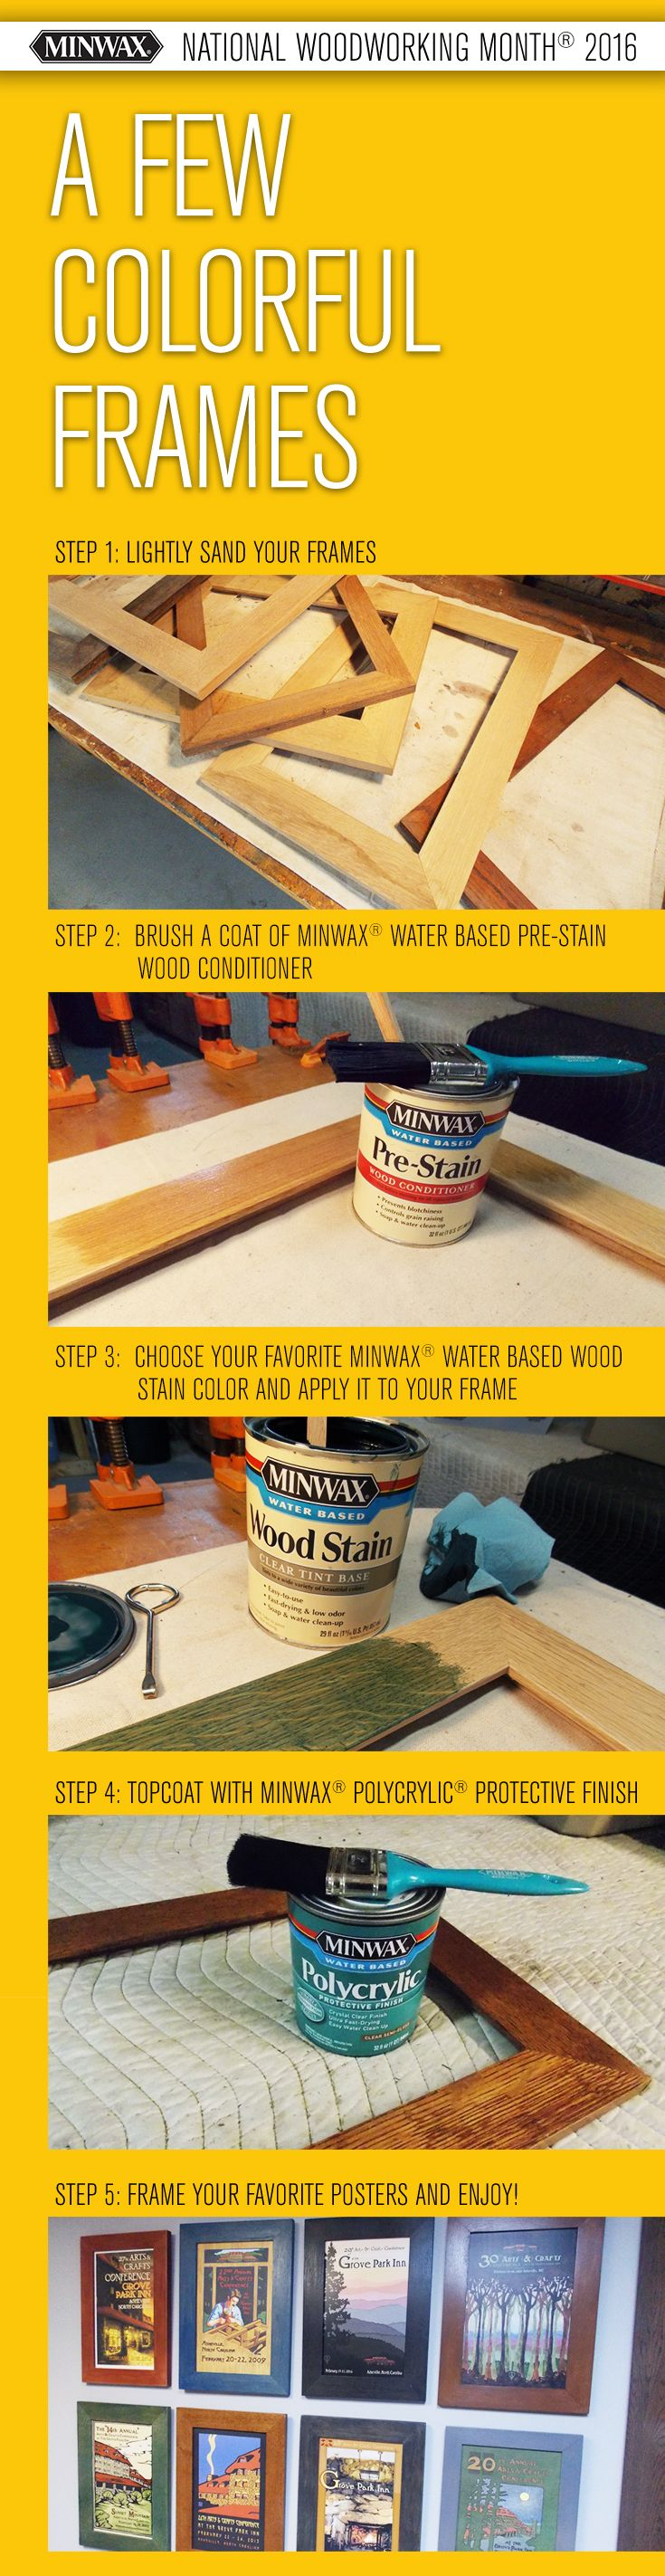 Minwax gel stain colors home depot wood stains color chart car tuning - Find This Pin And More On Minwax National Woodworking Month 2016 Why Do You Diy